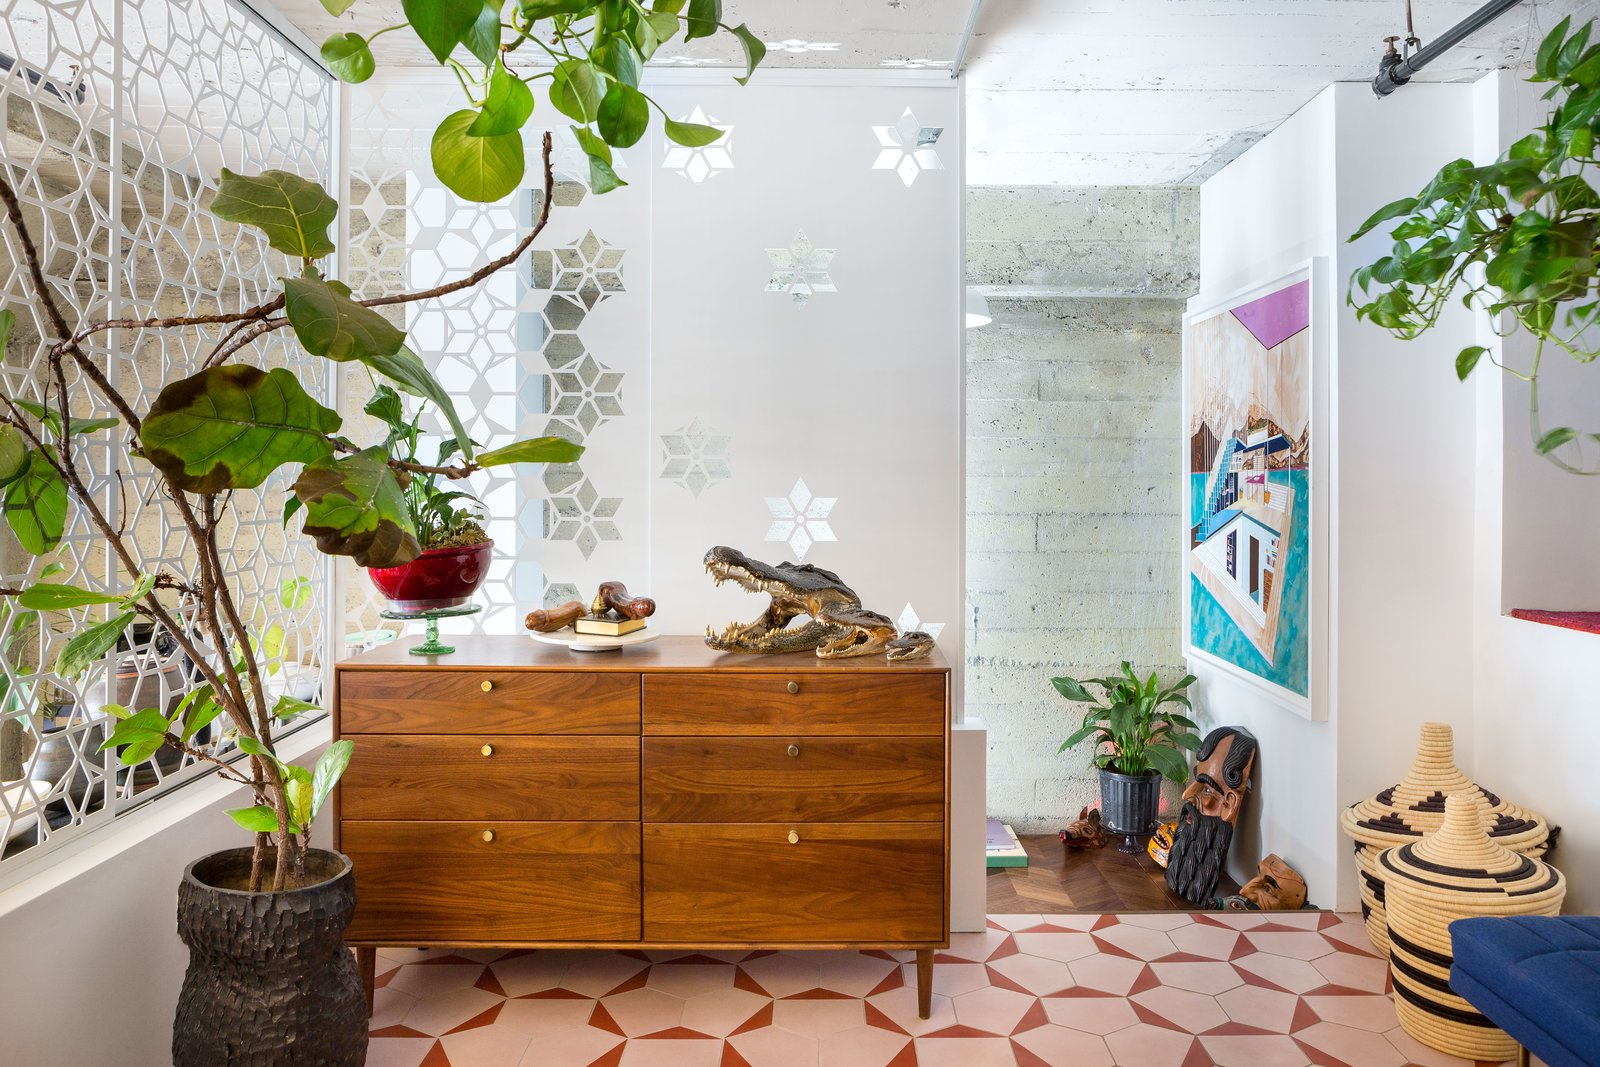 Storage Morrison's dressing room features pink cement tiles from Bay Area company Cle Tiles. The screens were actually designed to match the tiles.  Best Storage Photos from Budget Breakdown: A Bay Area Warehouse Becomes a Live/Work Space For $124K